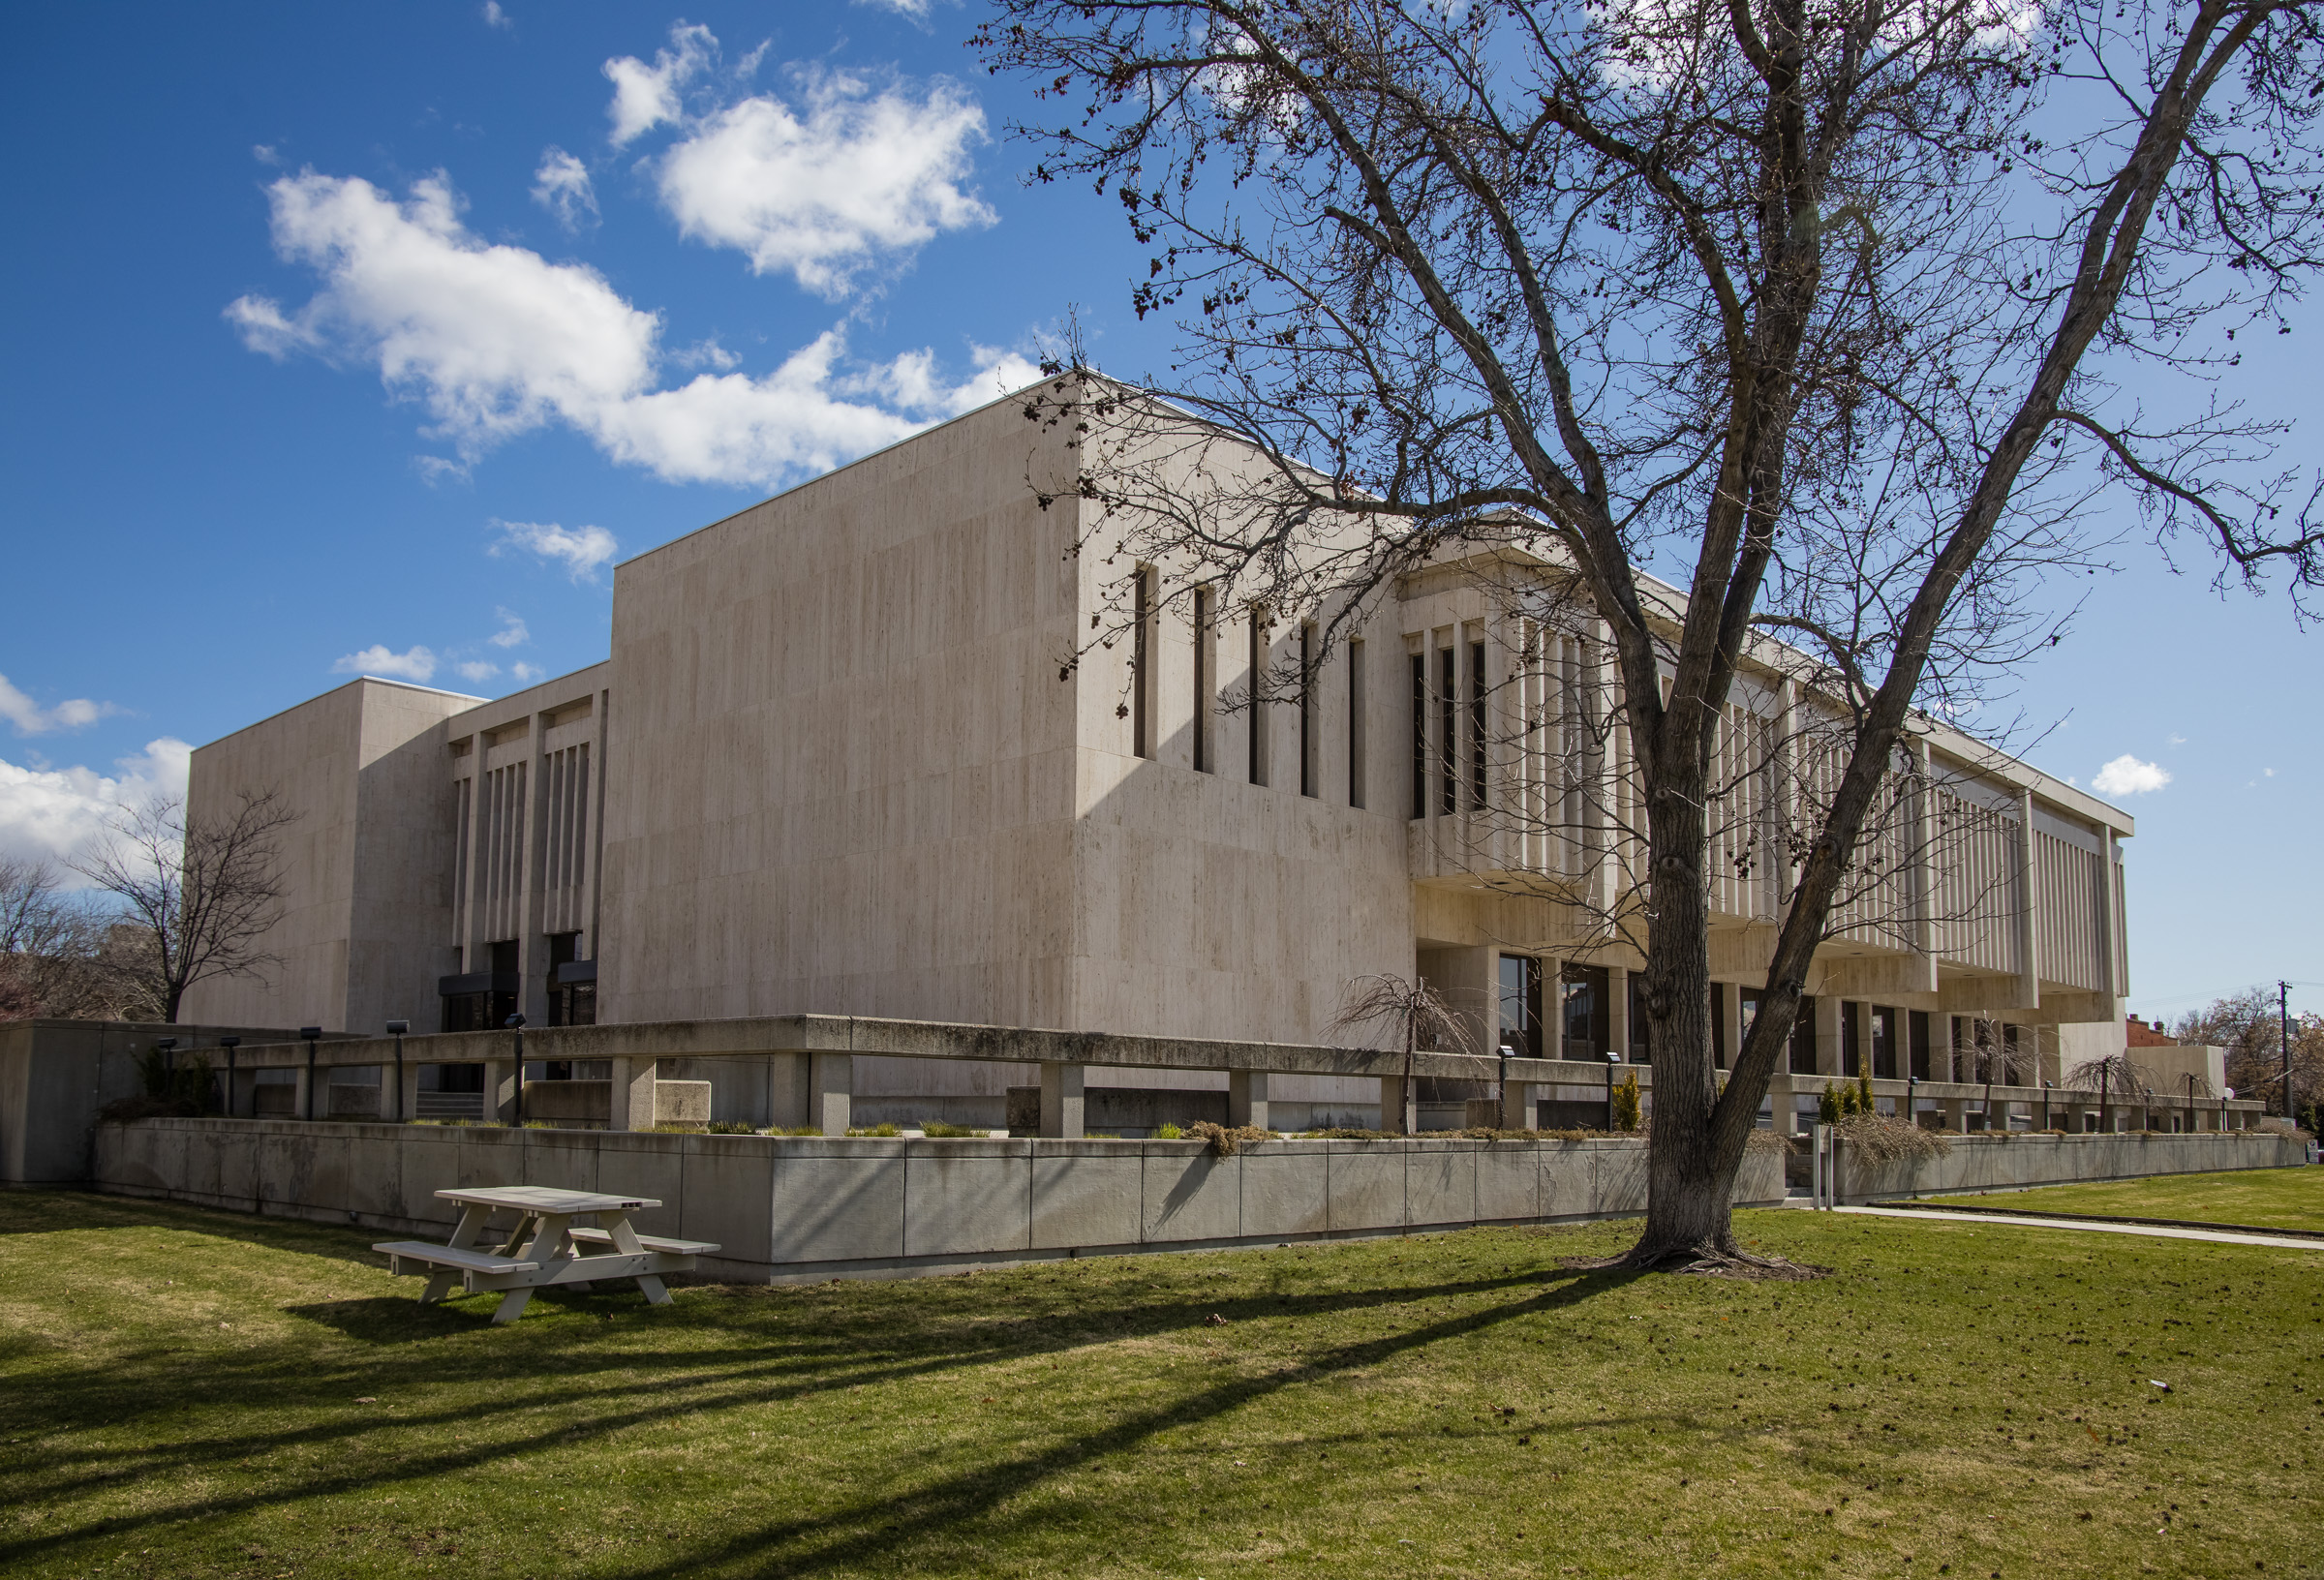 The Idaho Supreme Court building in Boise on March 23, 2021.